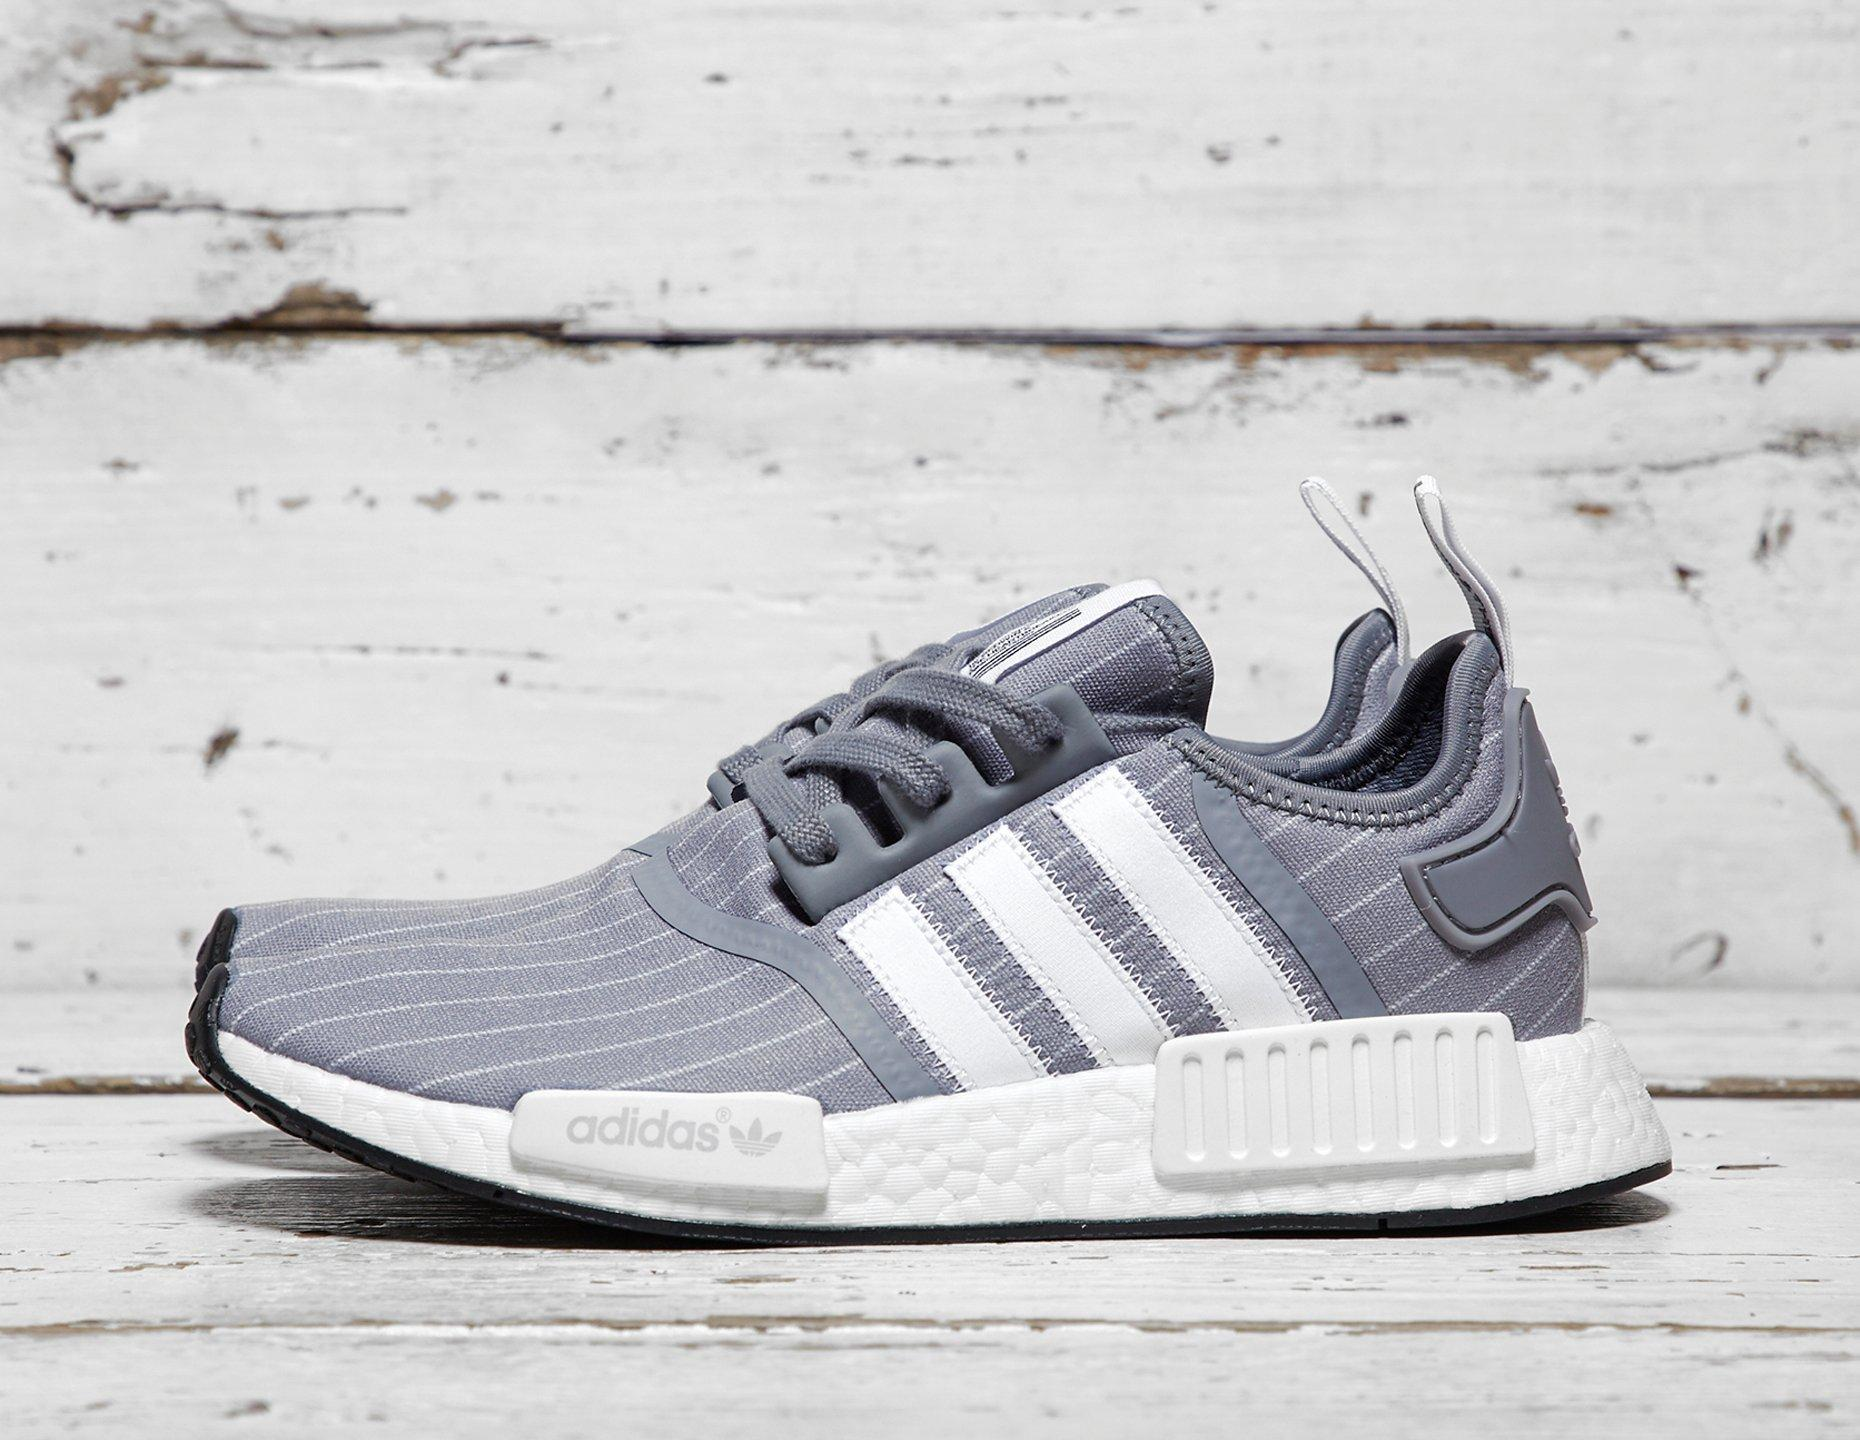 Mens adidas x Bedwin The Heartbreakers NMD_R1 - Grey, Grey - photo 1/1